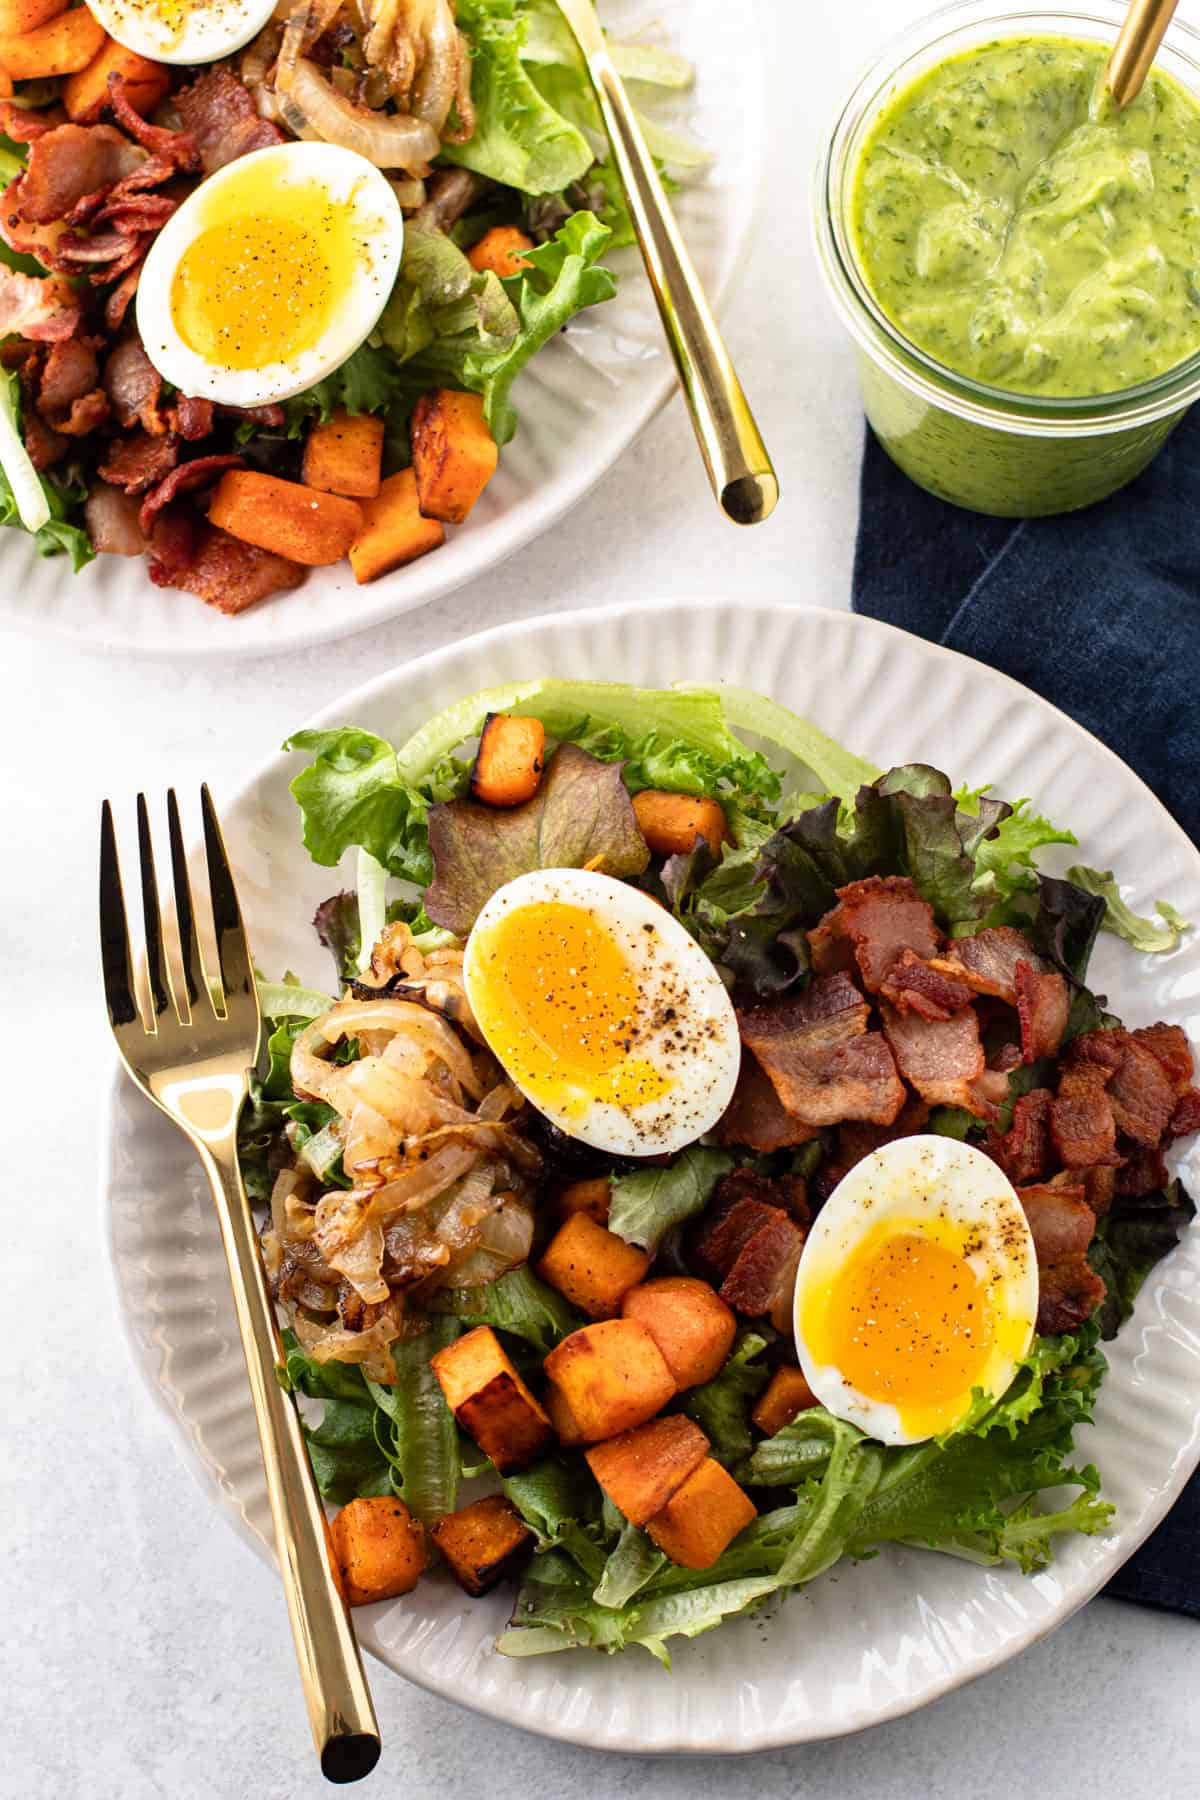 Breakfast salad with soft-boiled eggs, bacon, potatoes and onions.